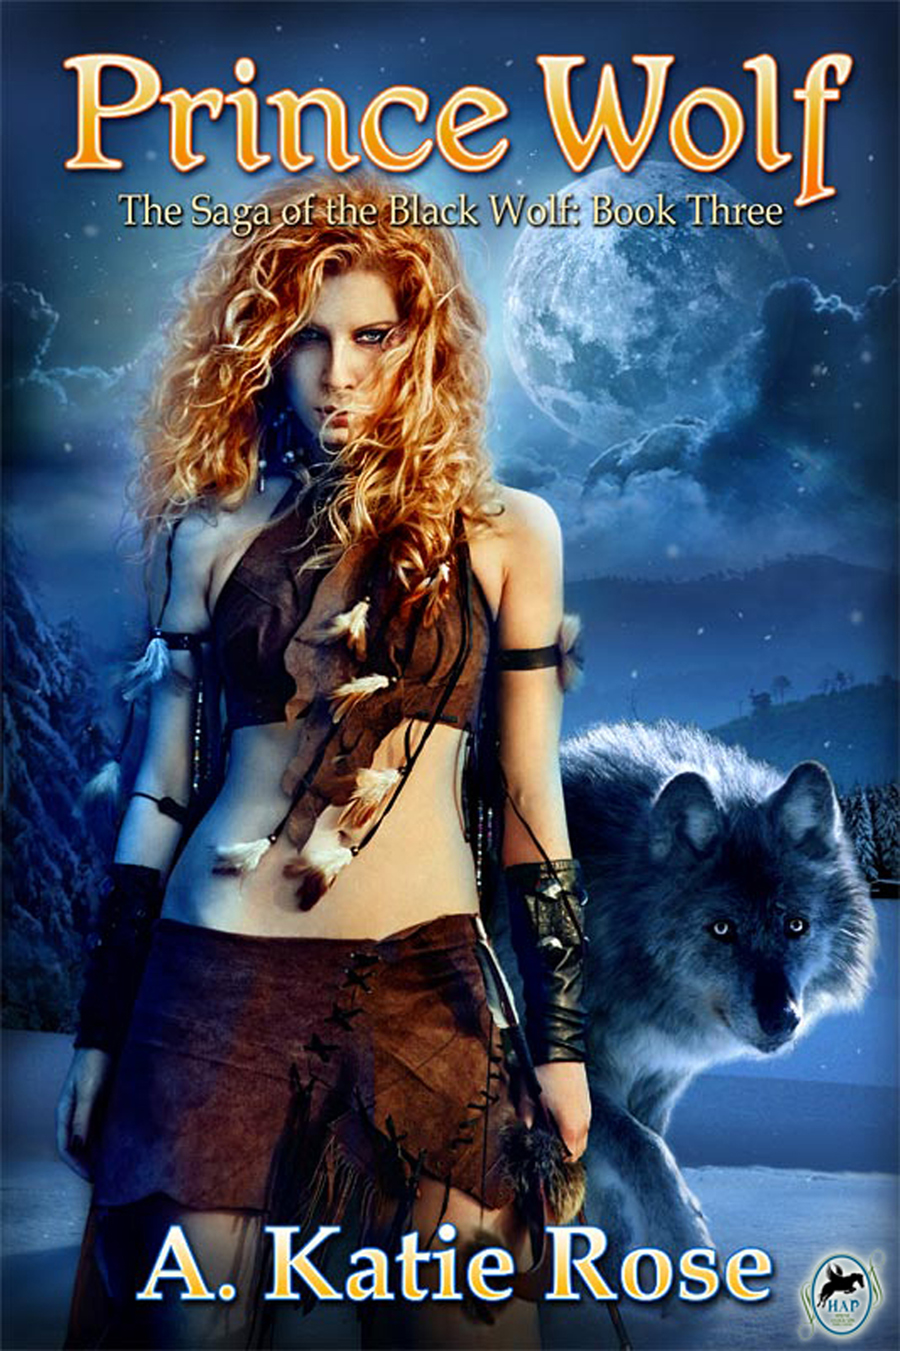 Prince Wolf: Saga of the Black Wolf, Book Three